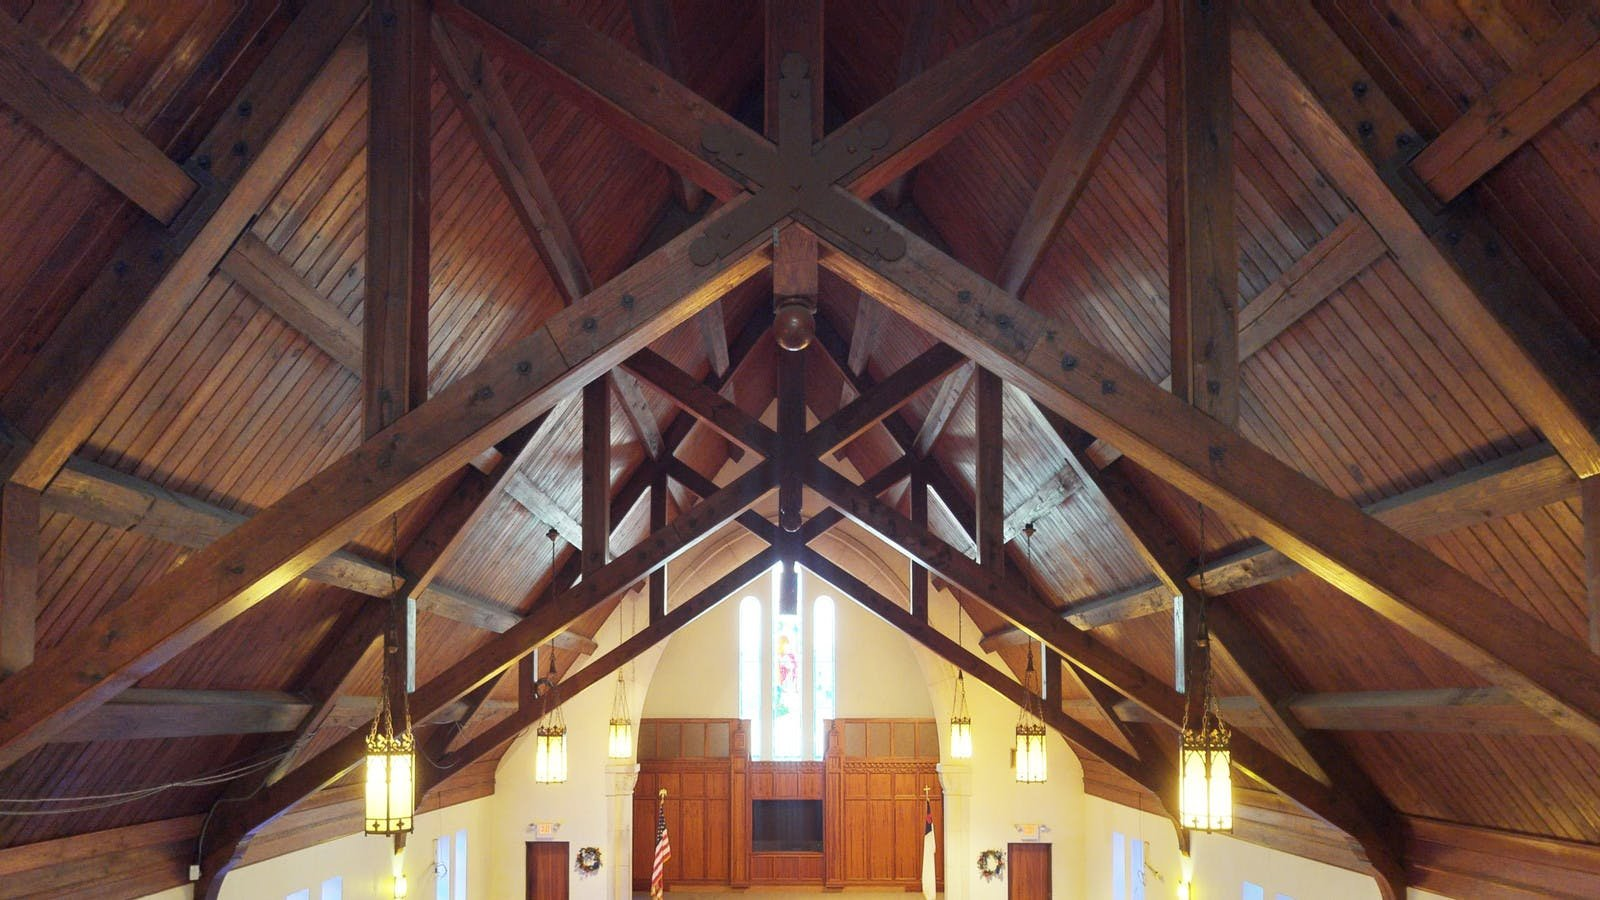 From https://www.truss.co/blog/when-a-church-redevelops-into-retail-property